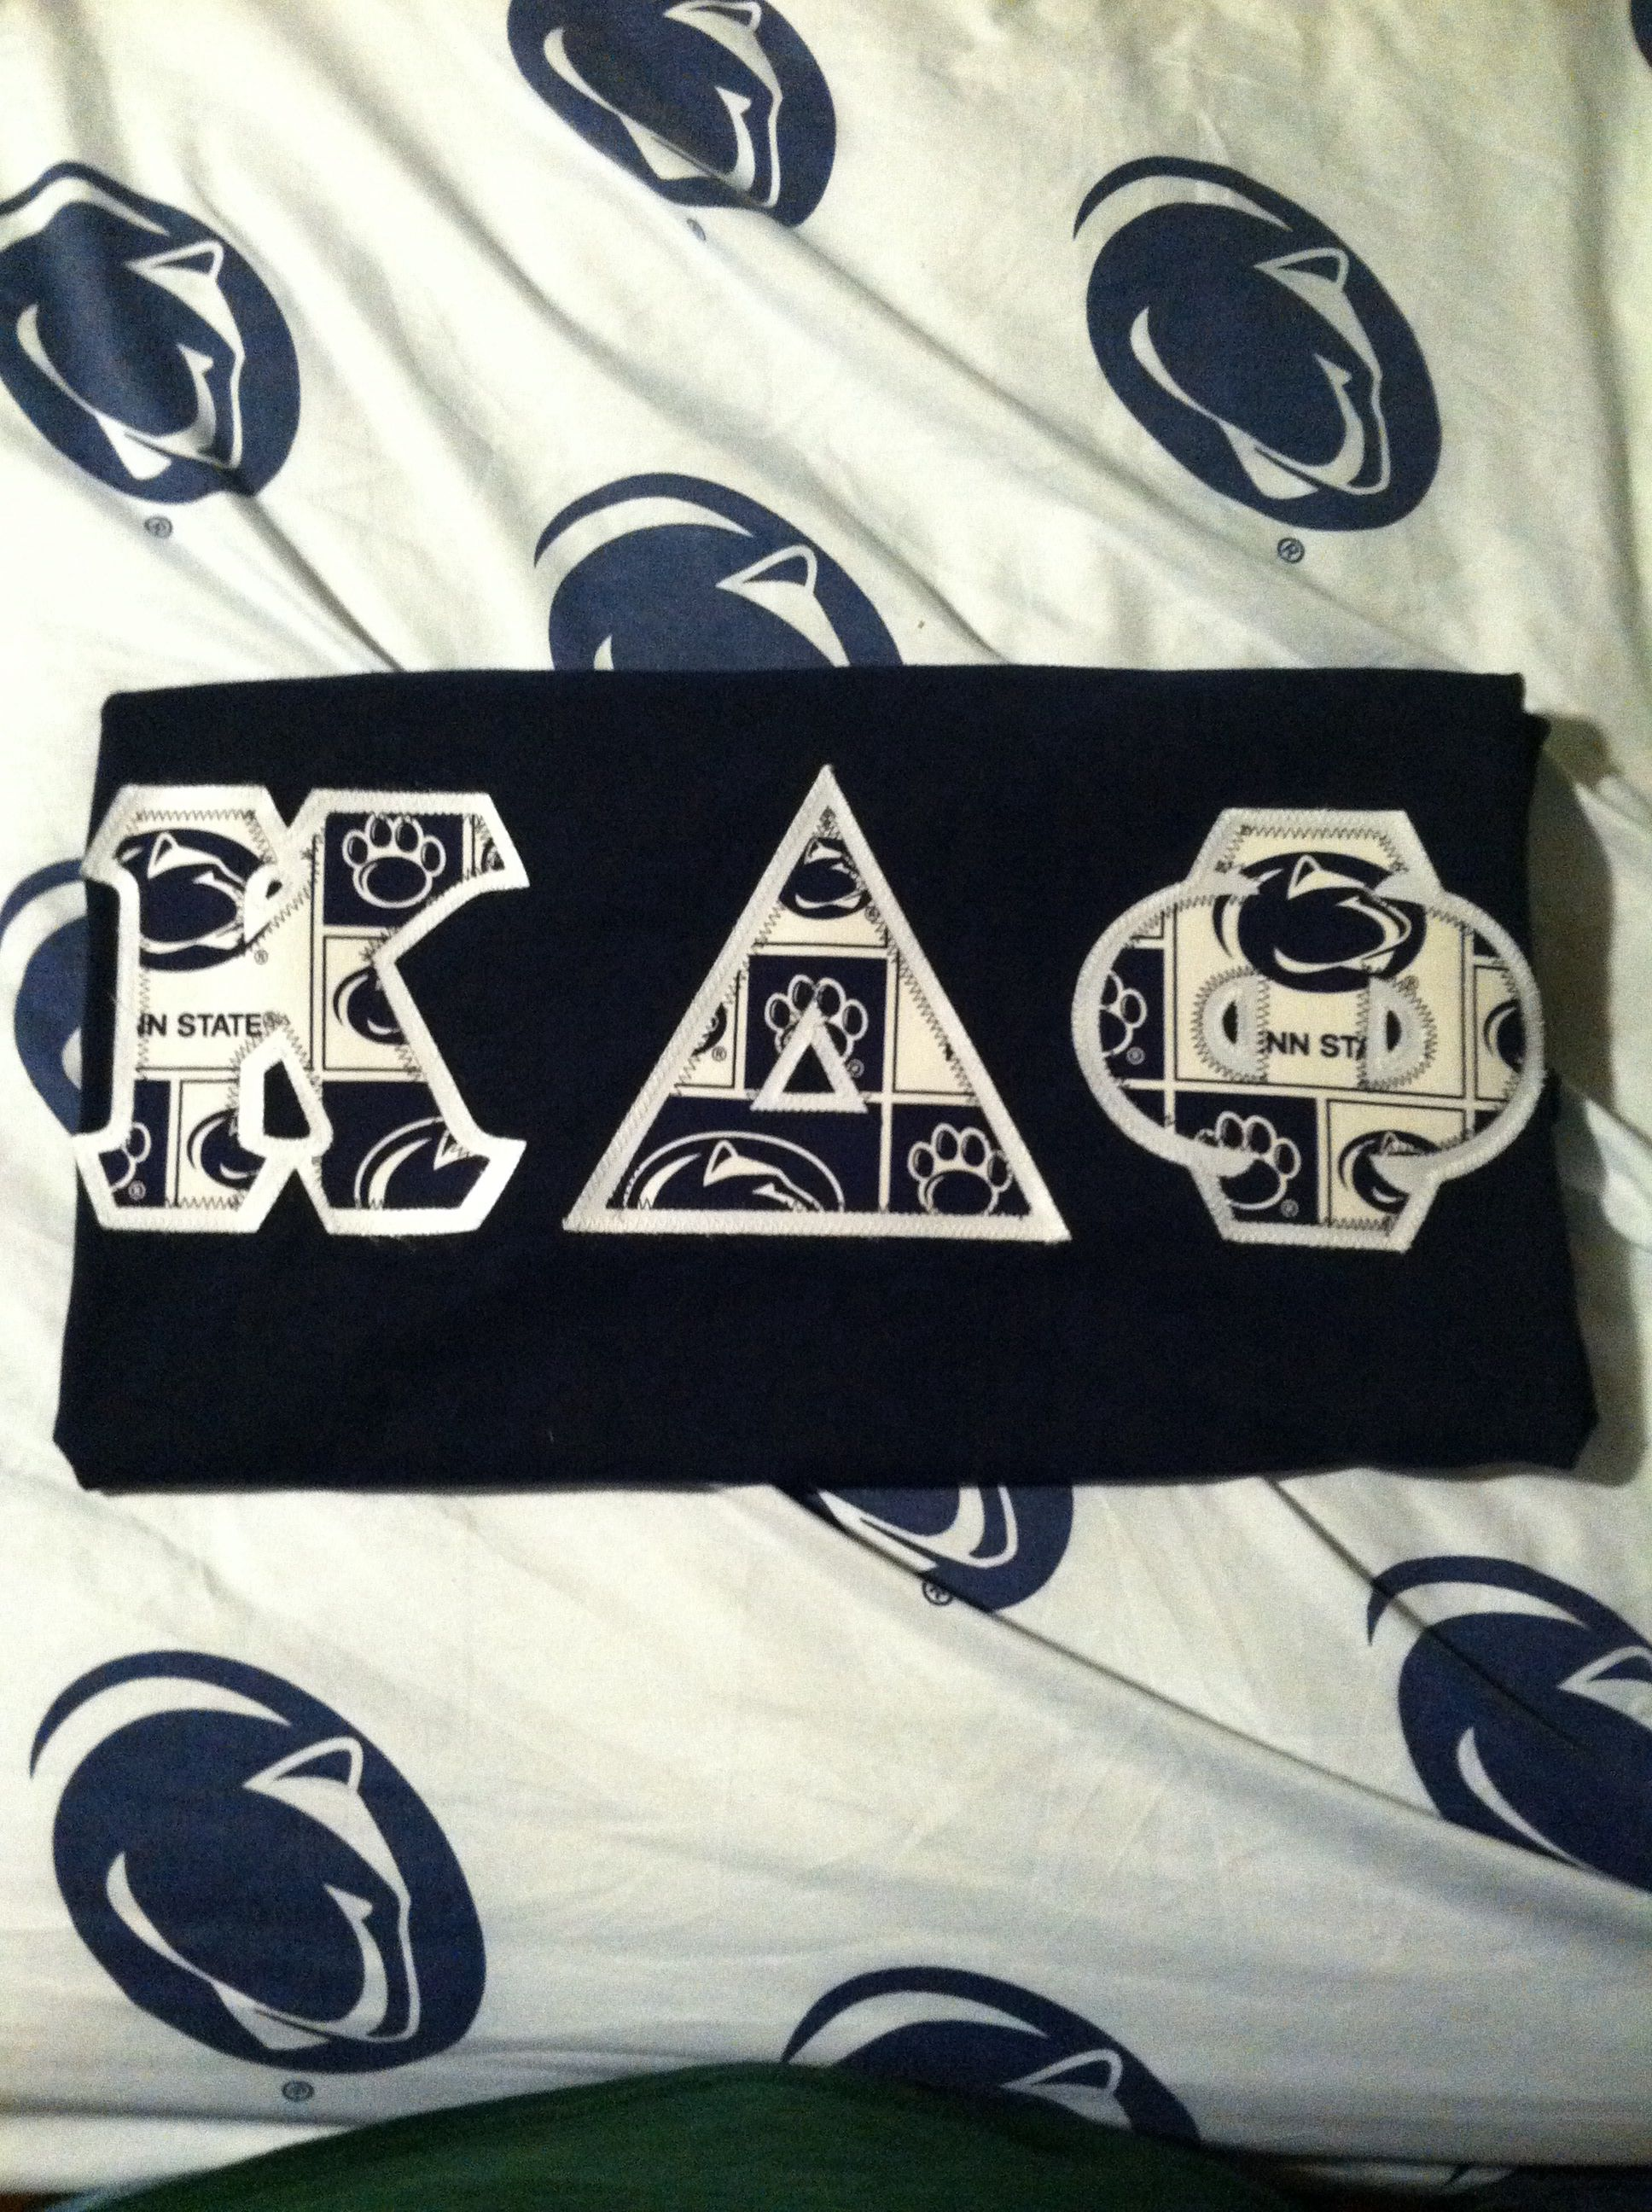 Penn State ΚΔΦ letters.